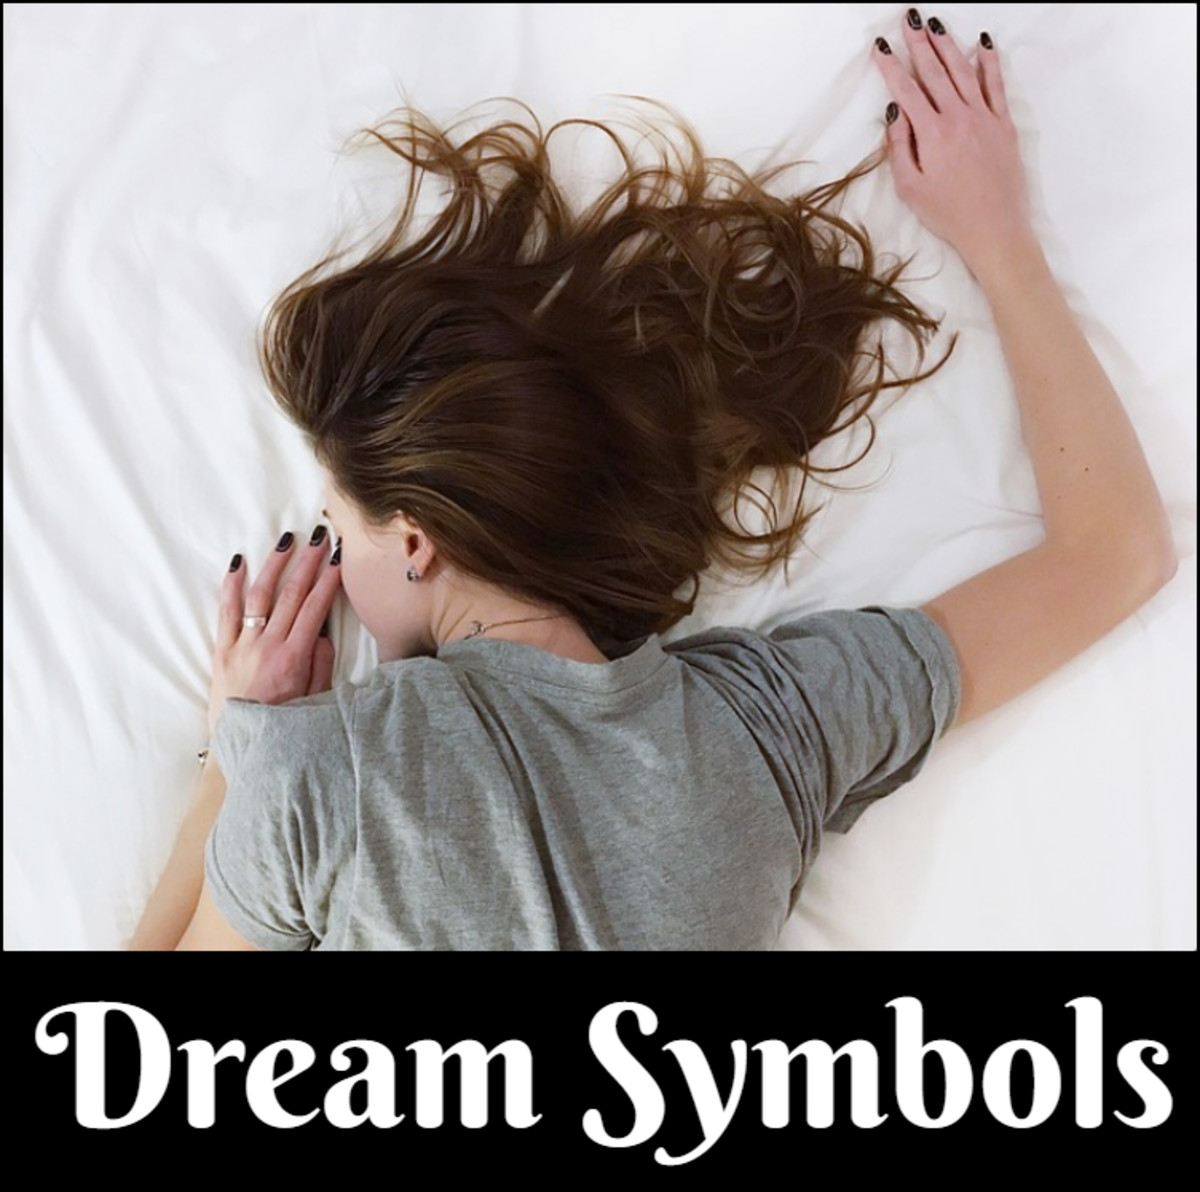 35 Dream Symbols and Their Meanings